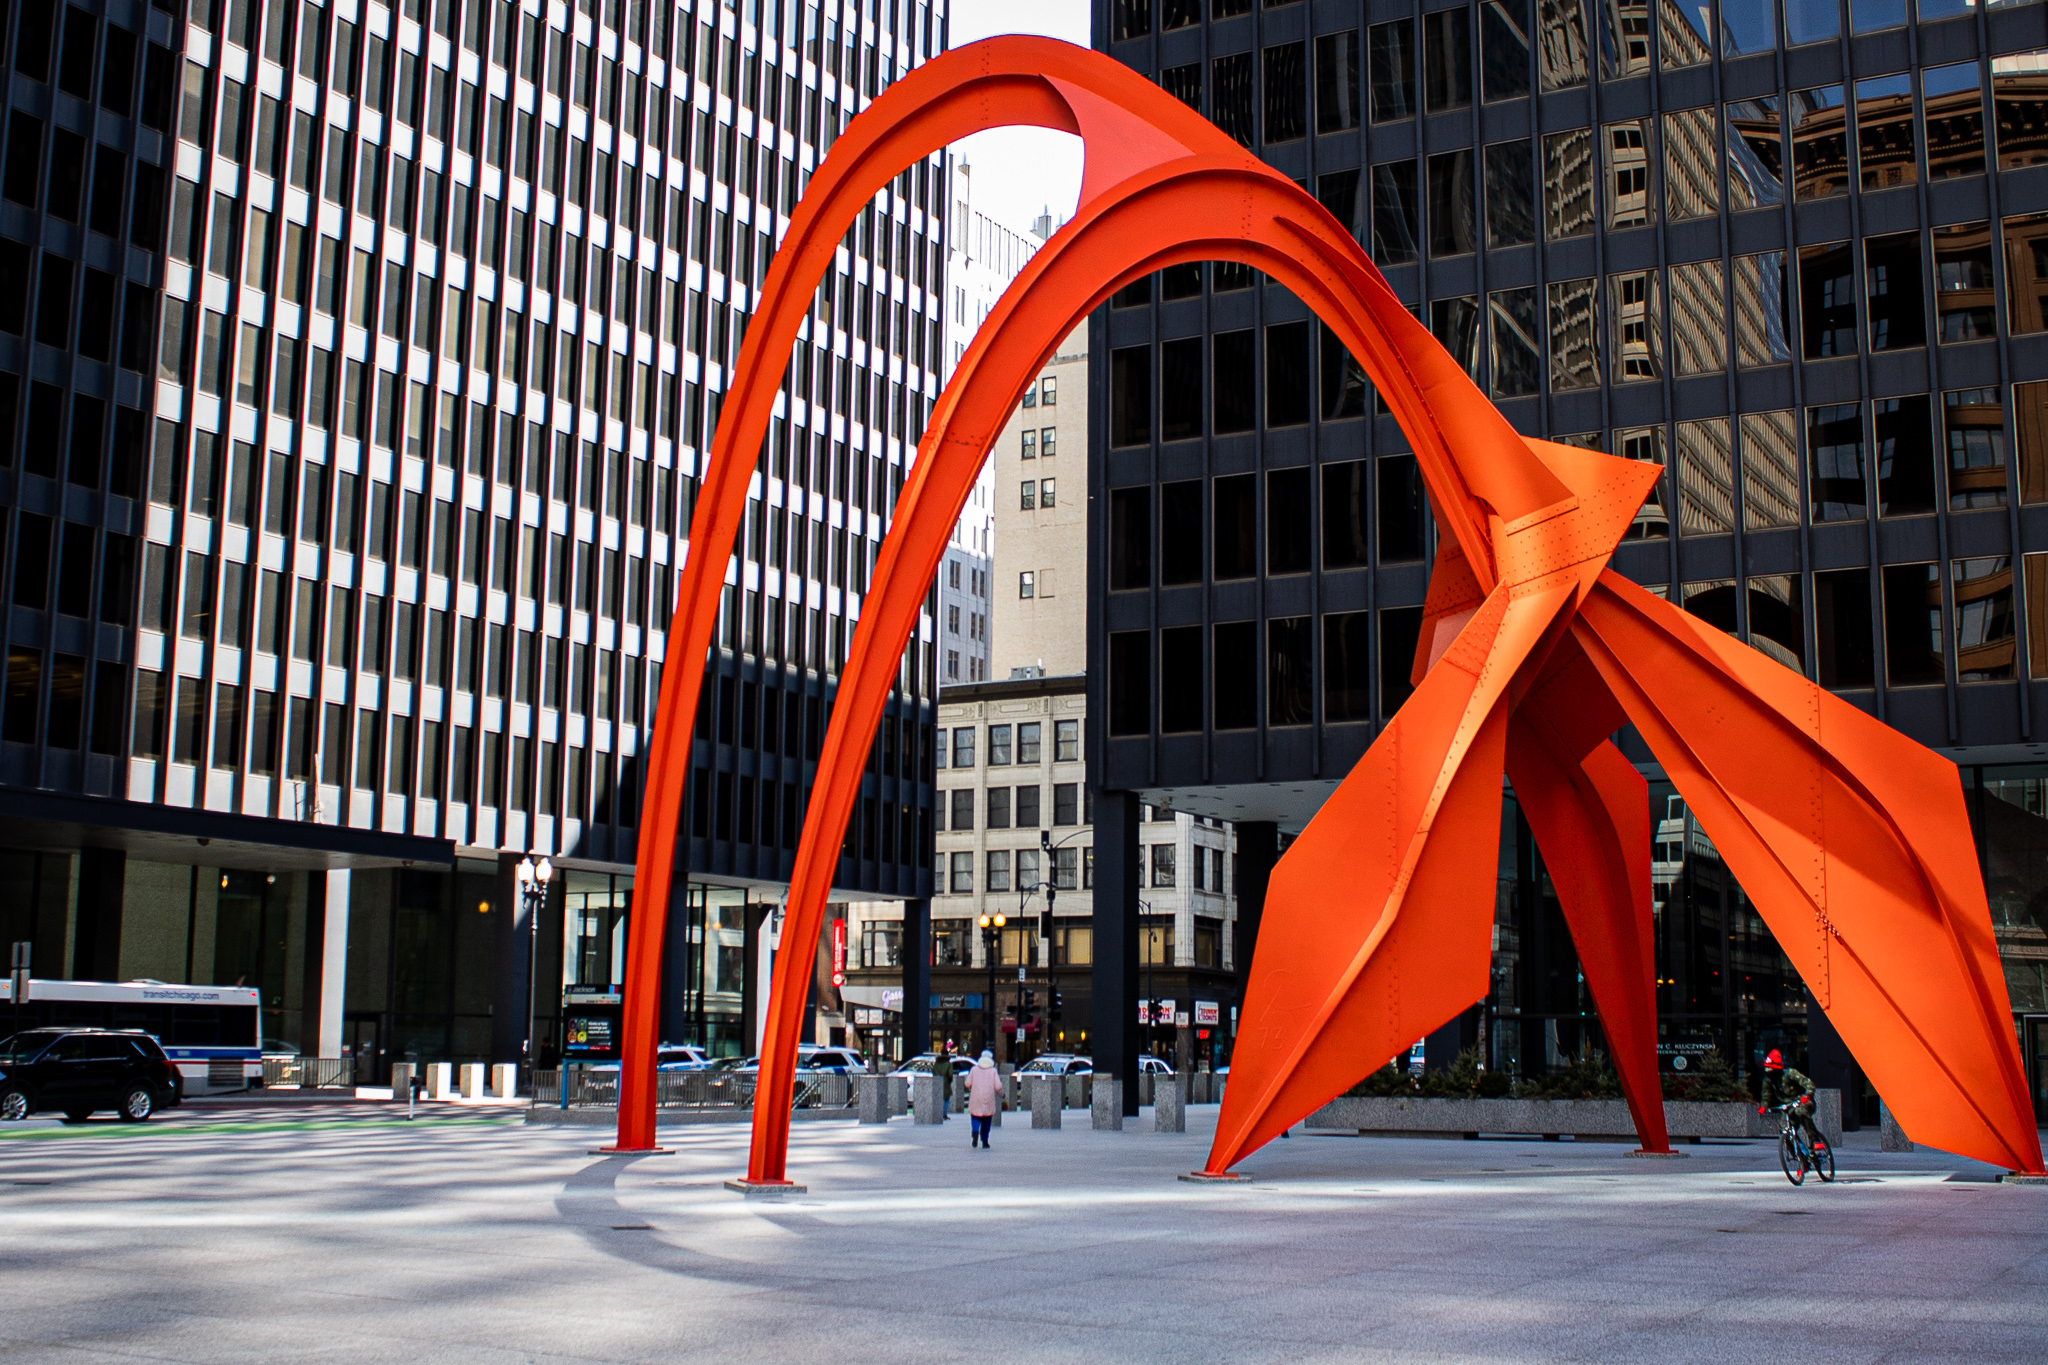 The sculpture of Calder's Flamingo in Chicago, IL